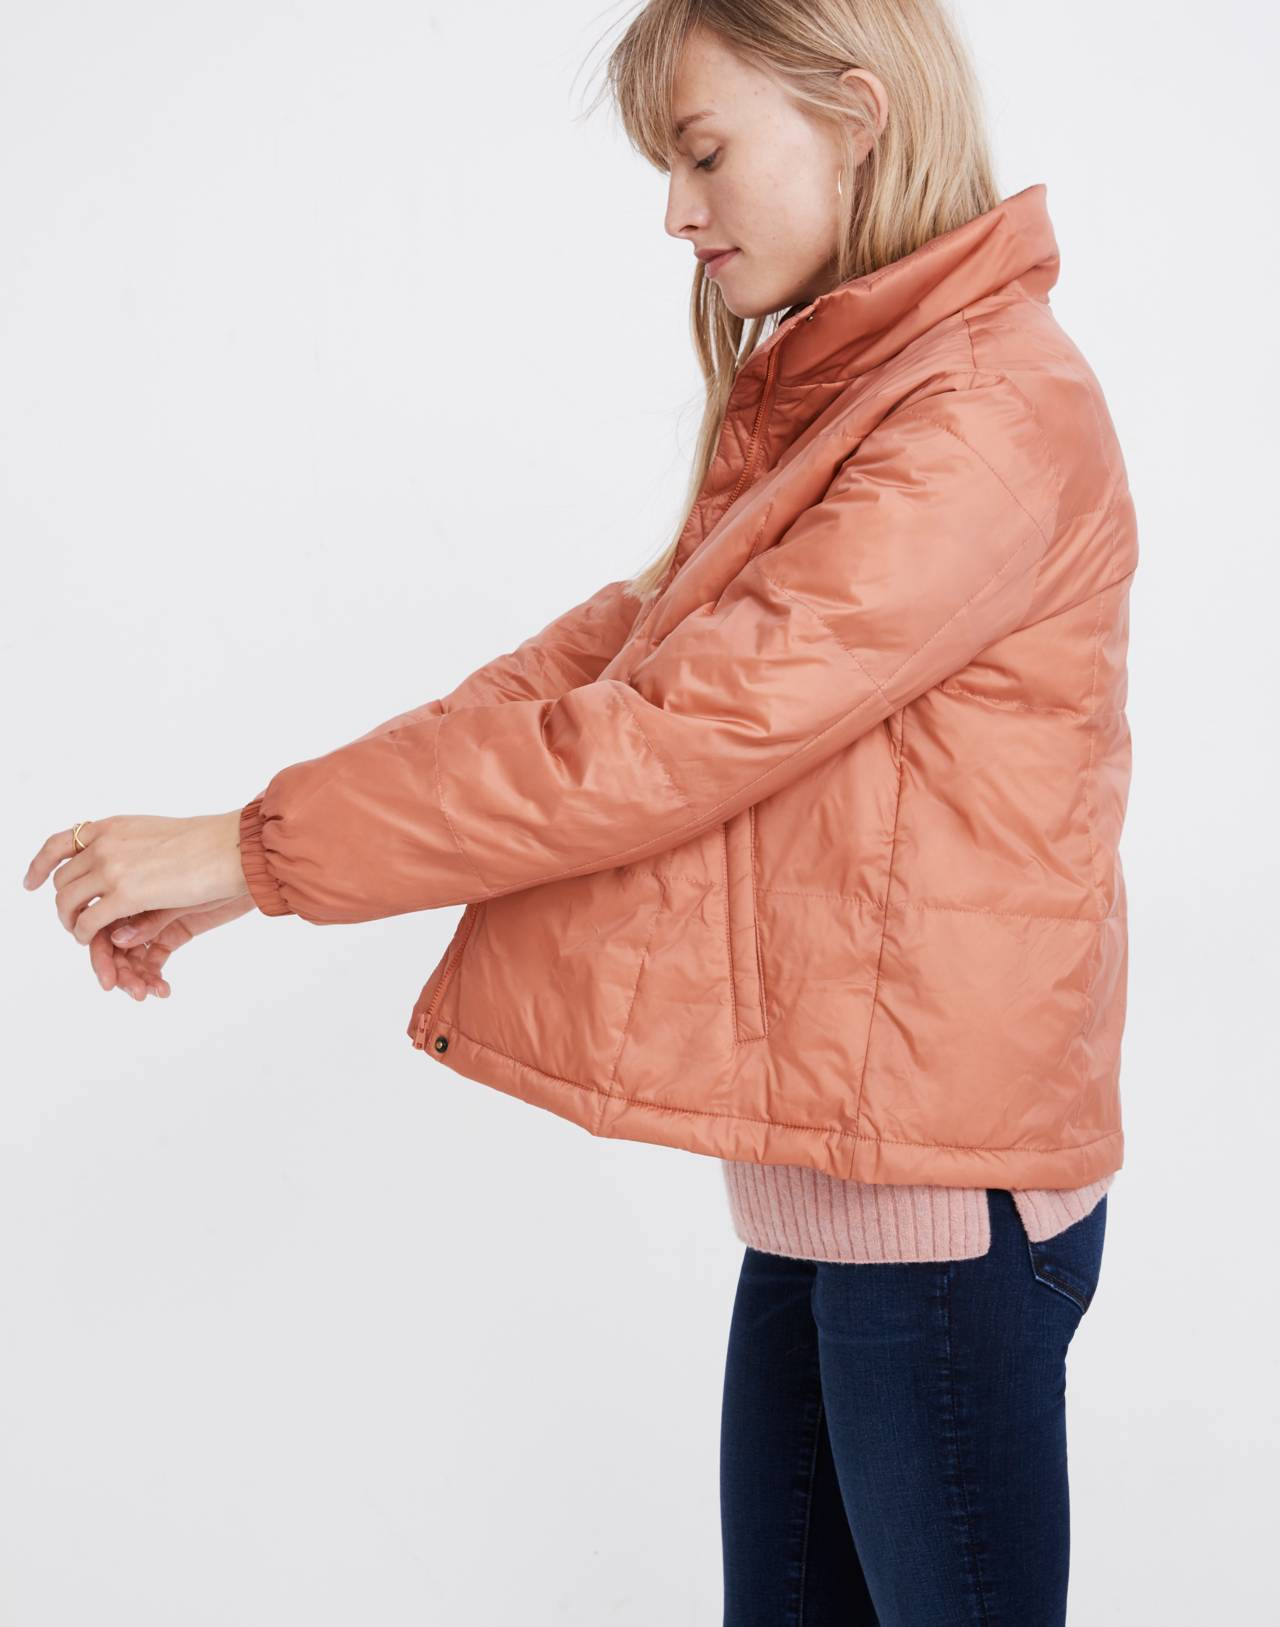 Travel Buddy Packable Puffer Jacket in sweet dahlia image 3